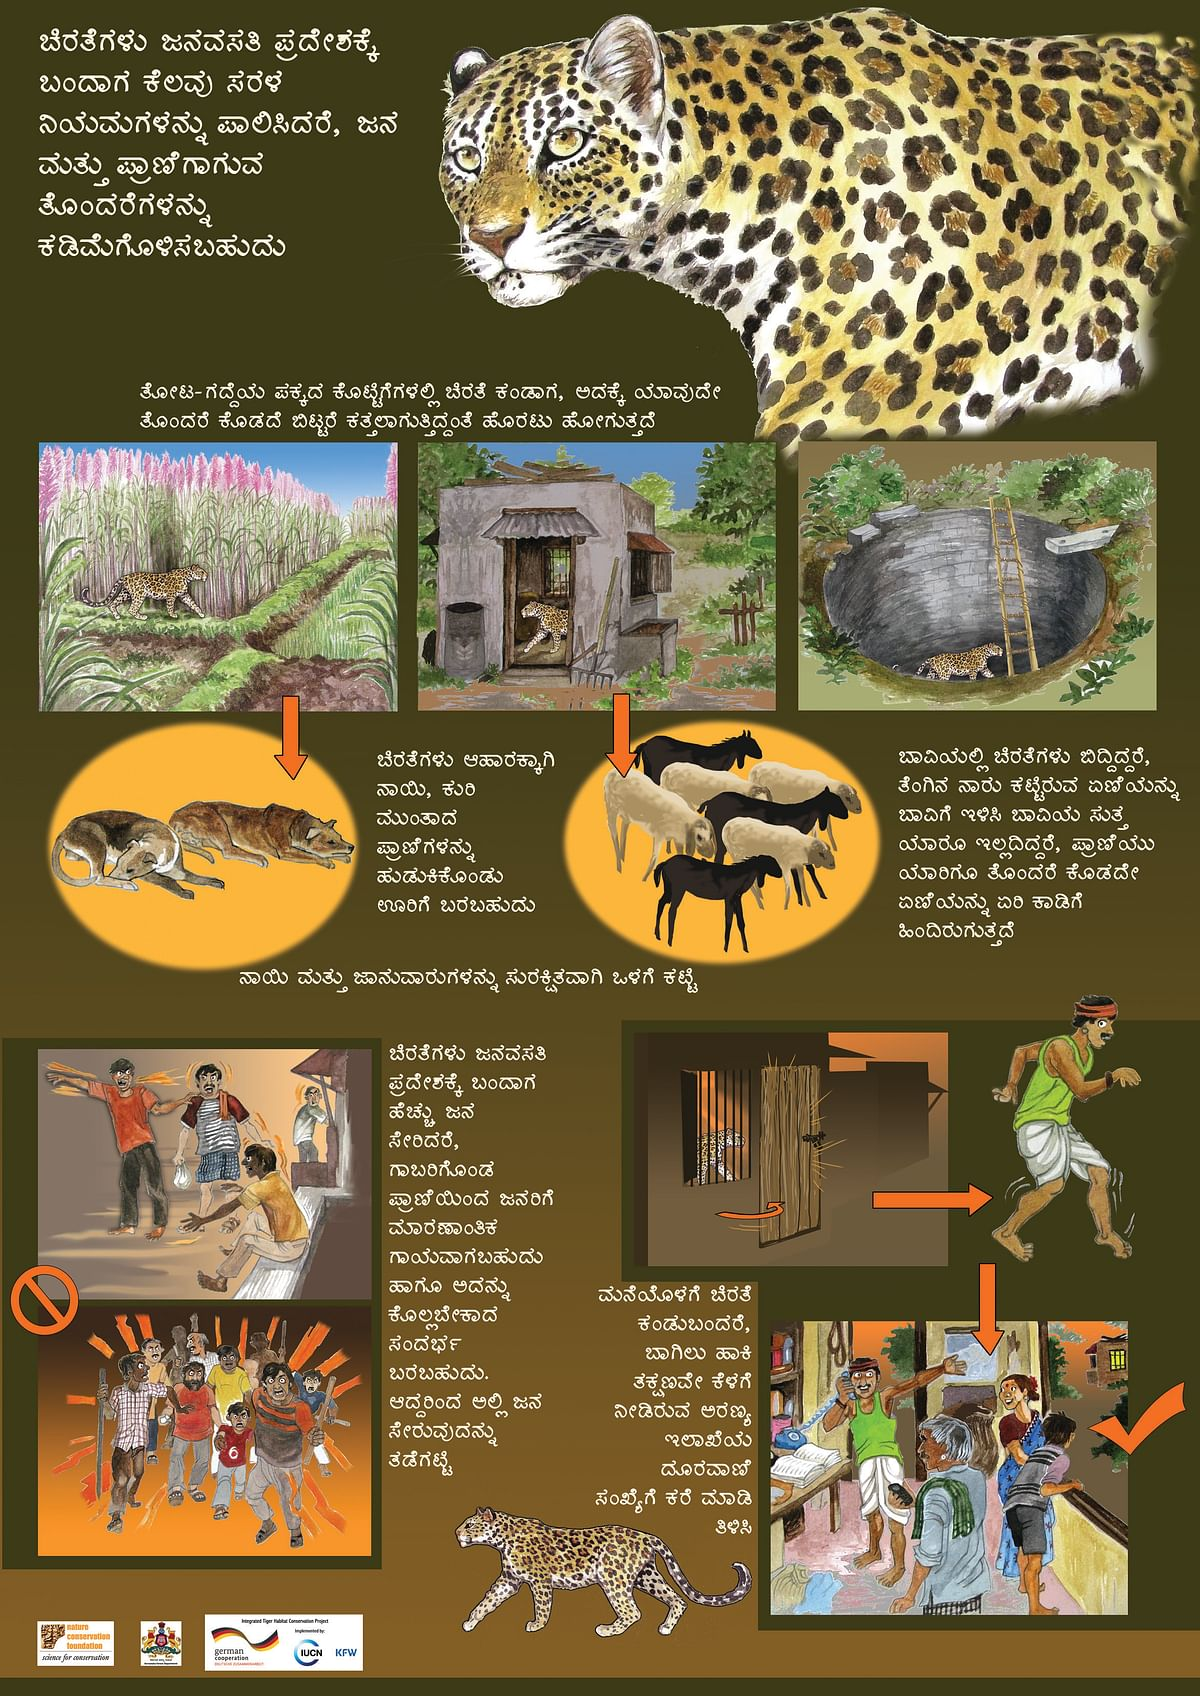 Poster designed to carry out awareness programs regarding human-leopard conflict